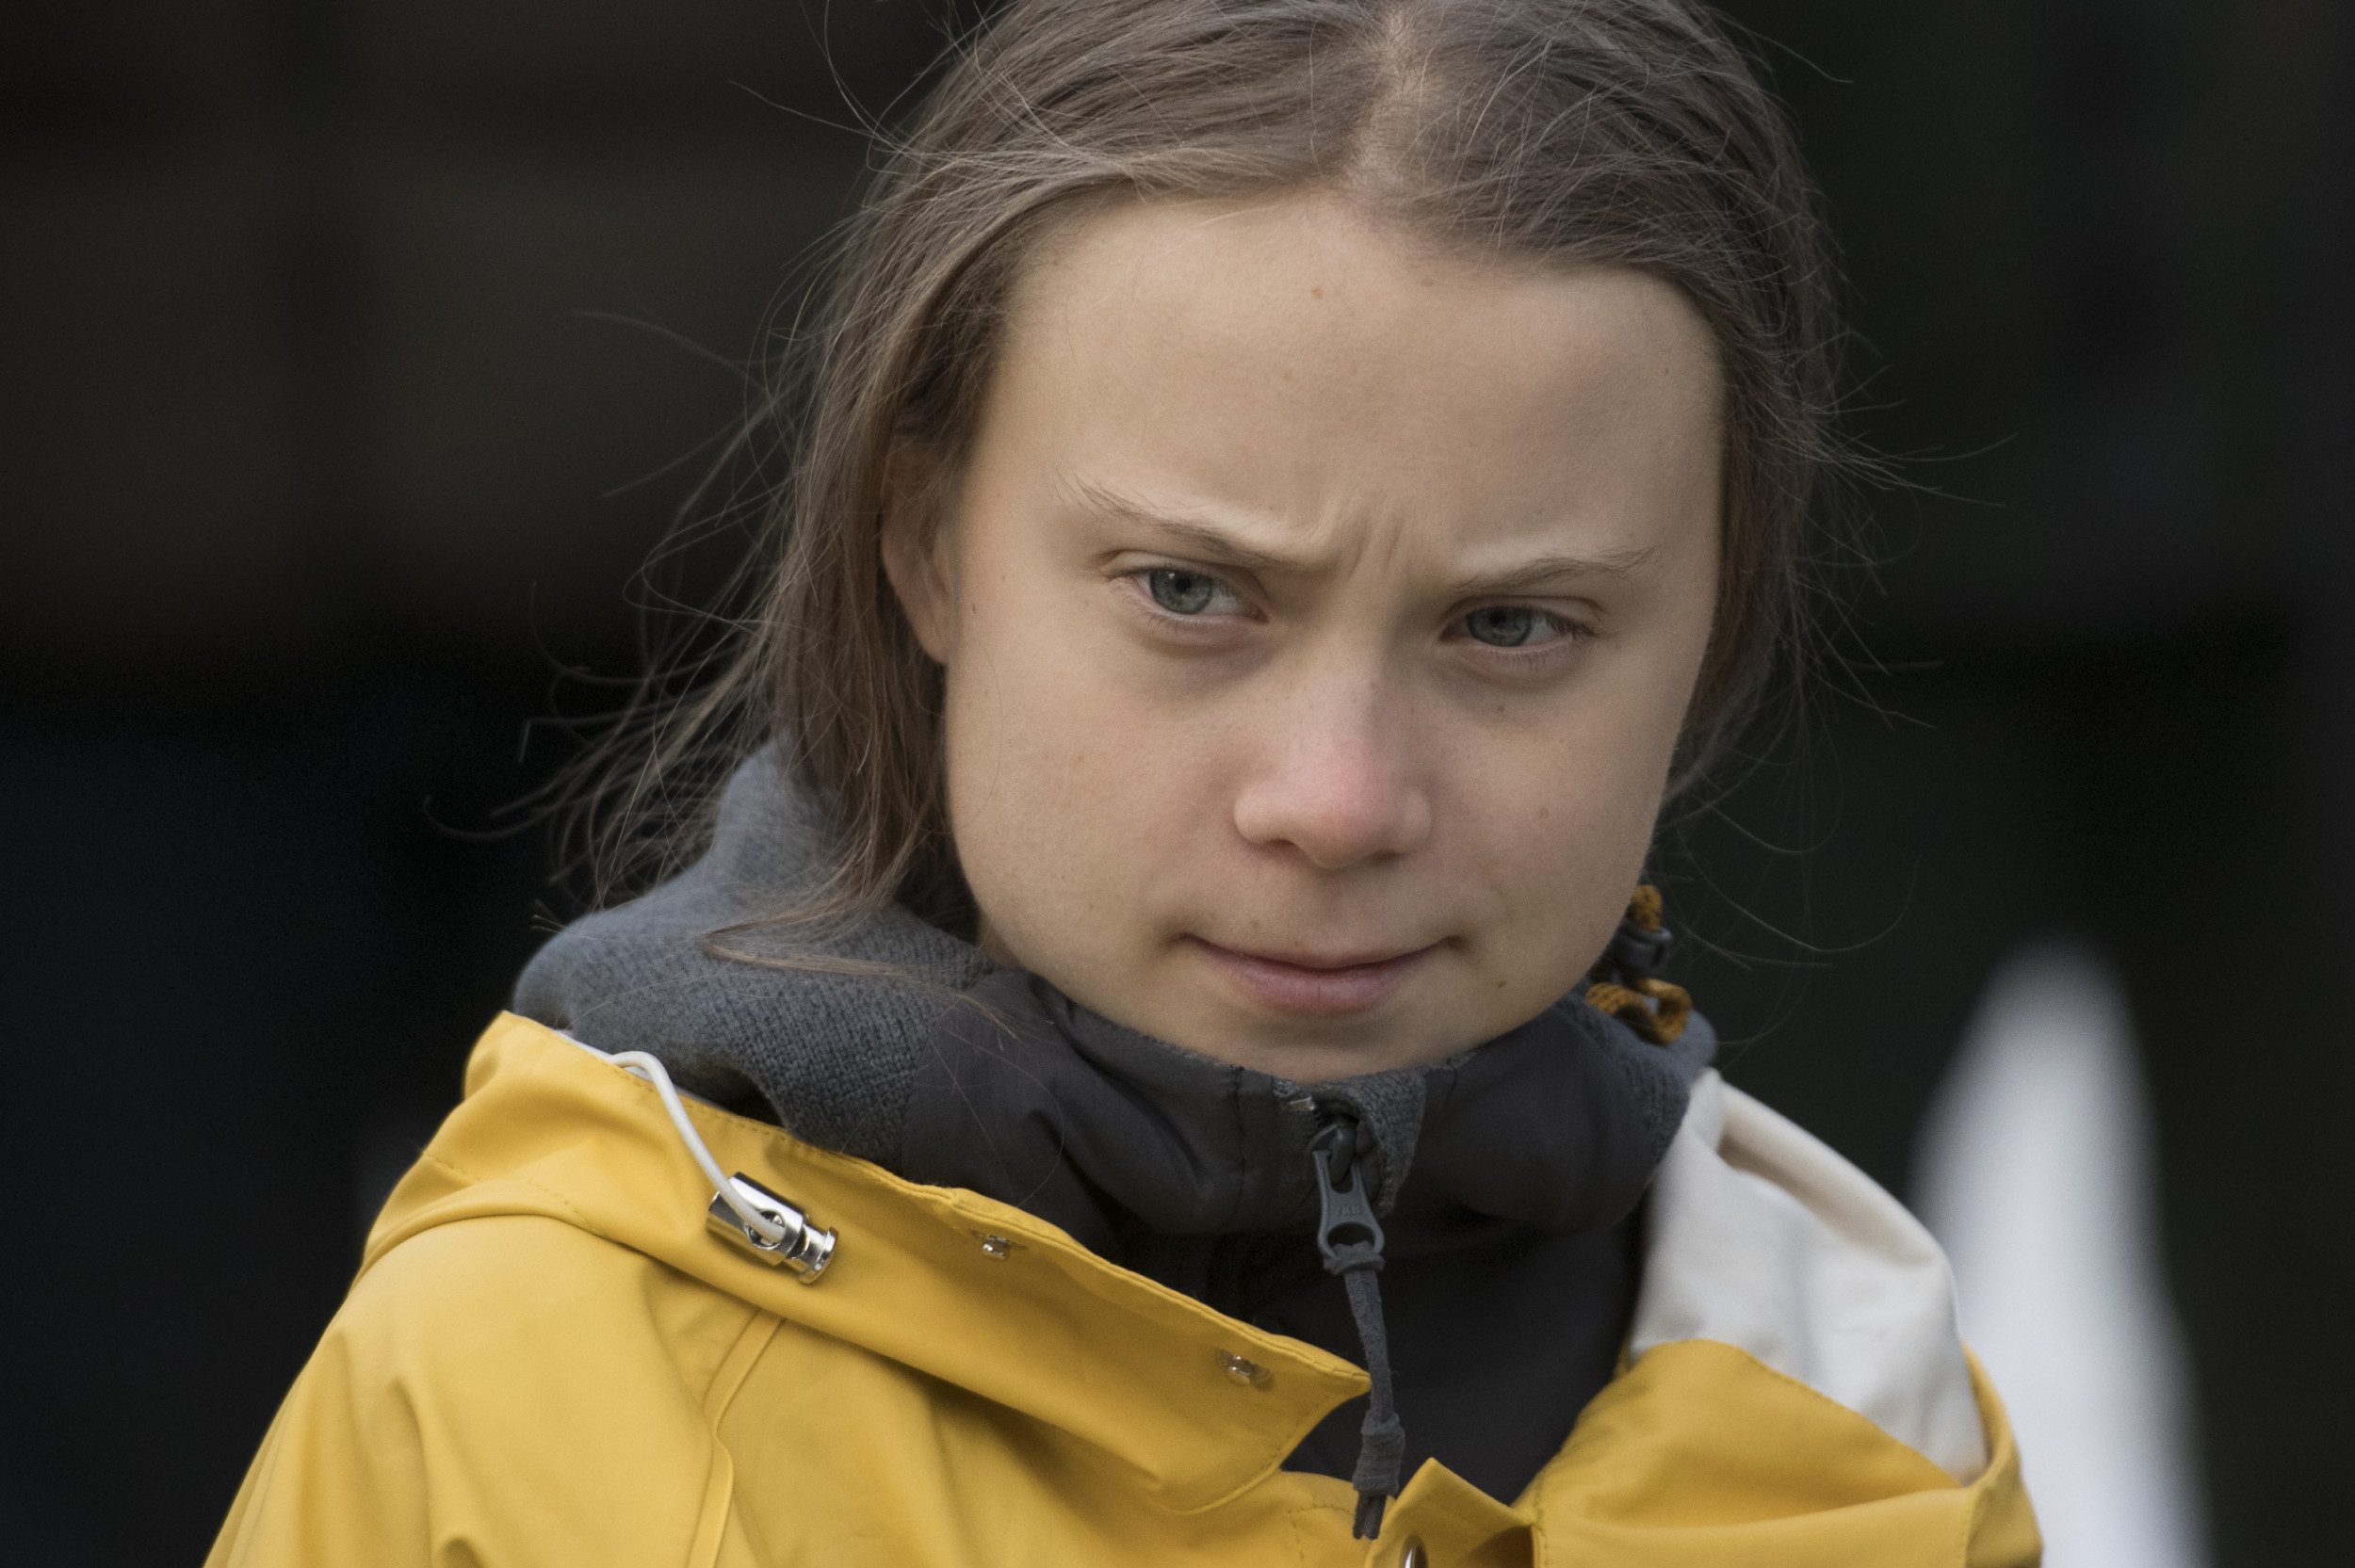 SNL takes Donald Trump's with Greta Thunberg: 'I'll come at you like a plastic straw comes at a turtle'